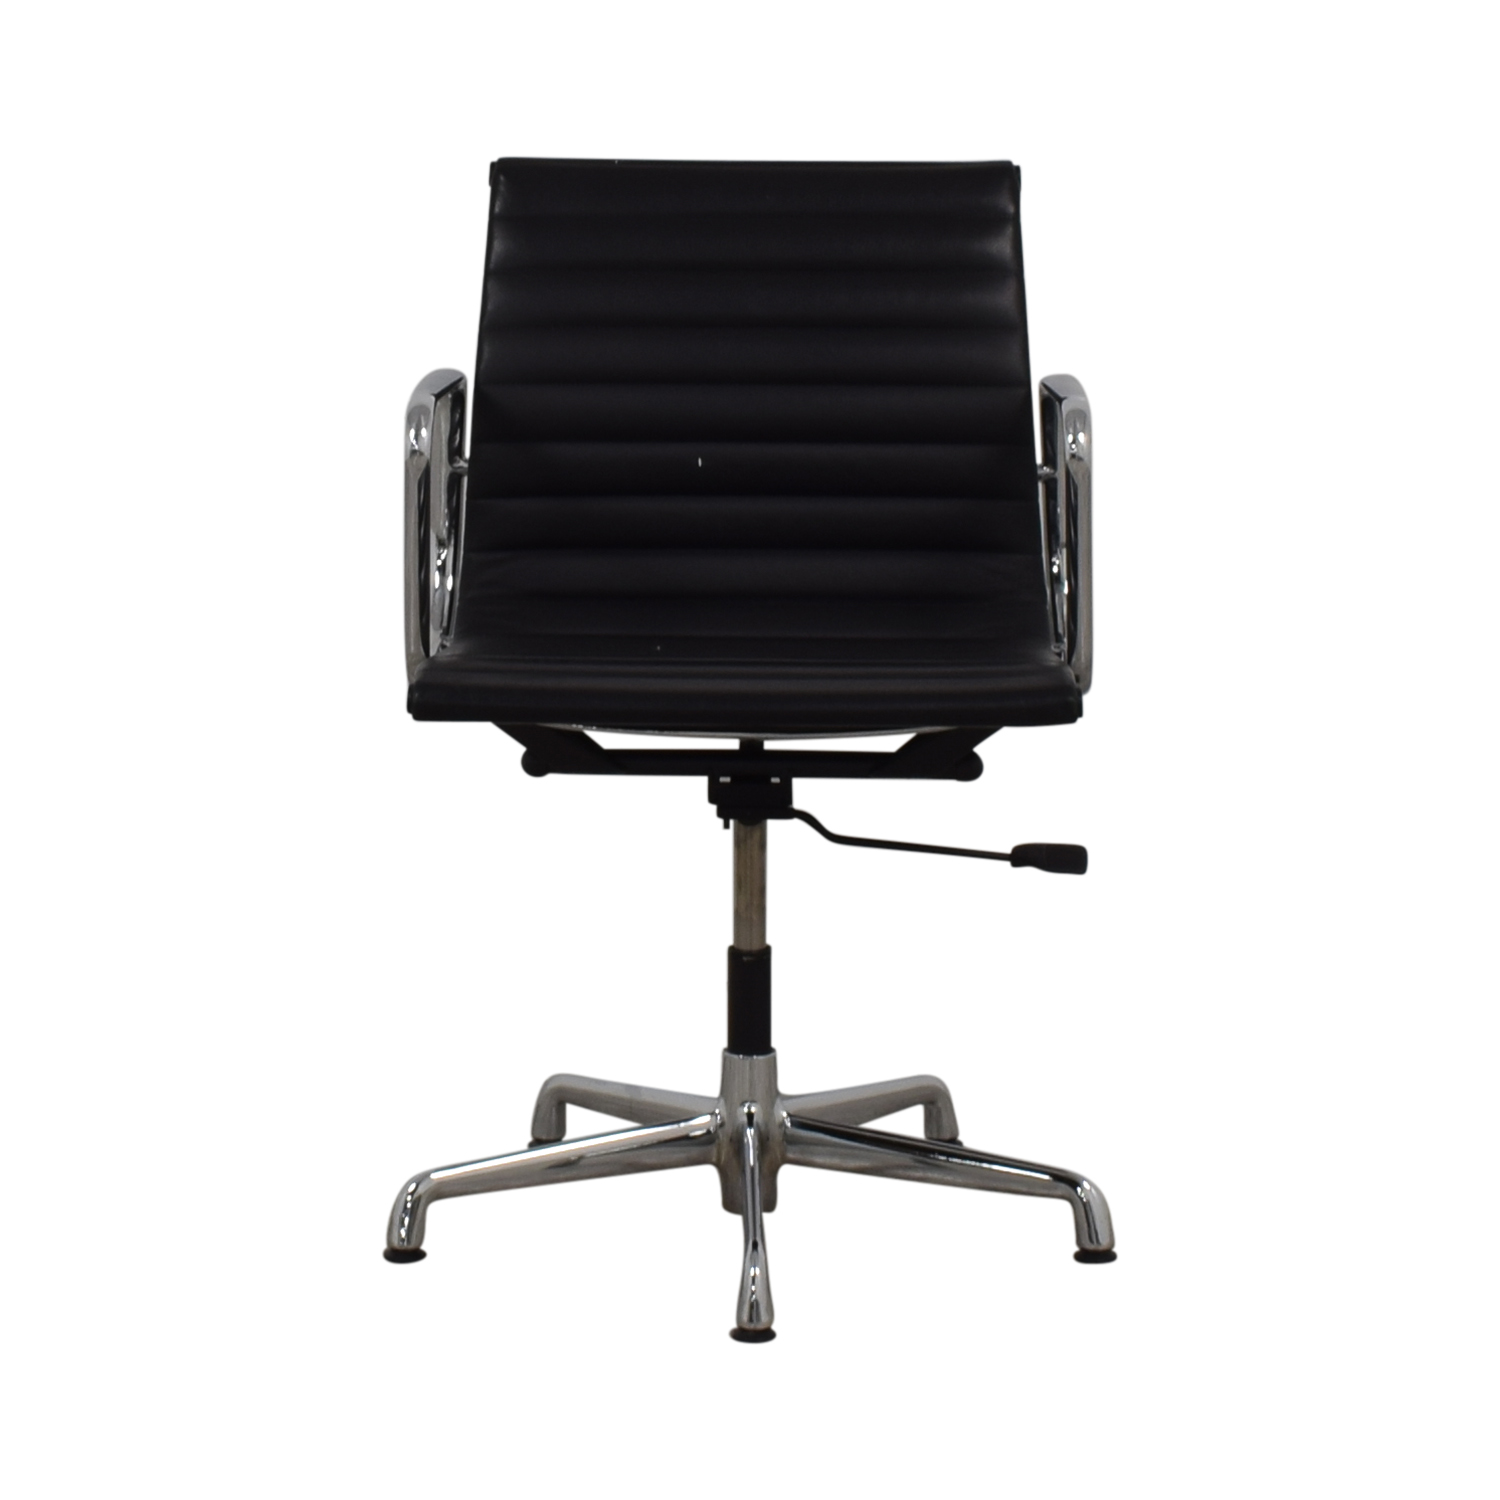 Herman Miller Herman Miller Black Leather Office Chair Home Office Chairs